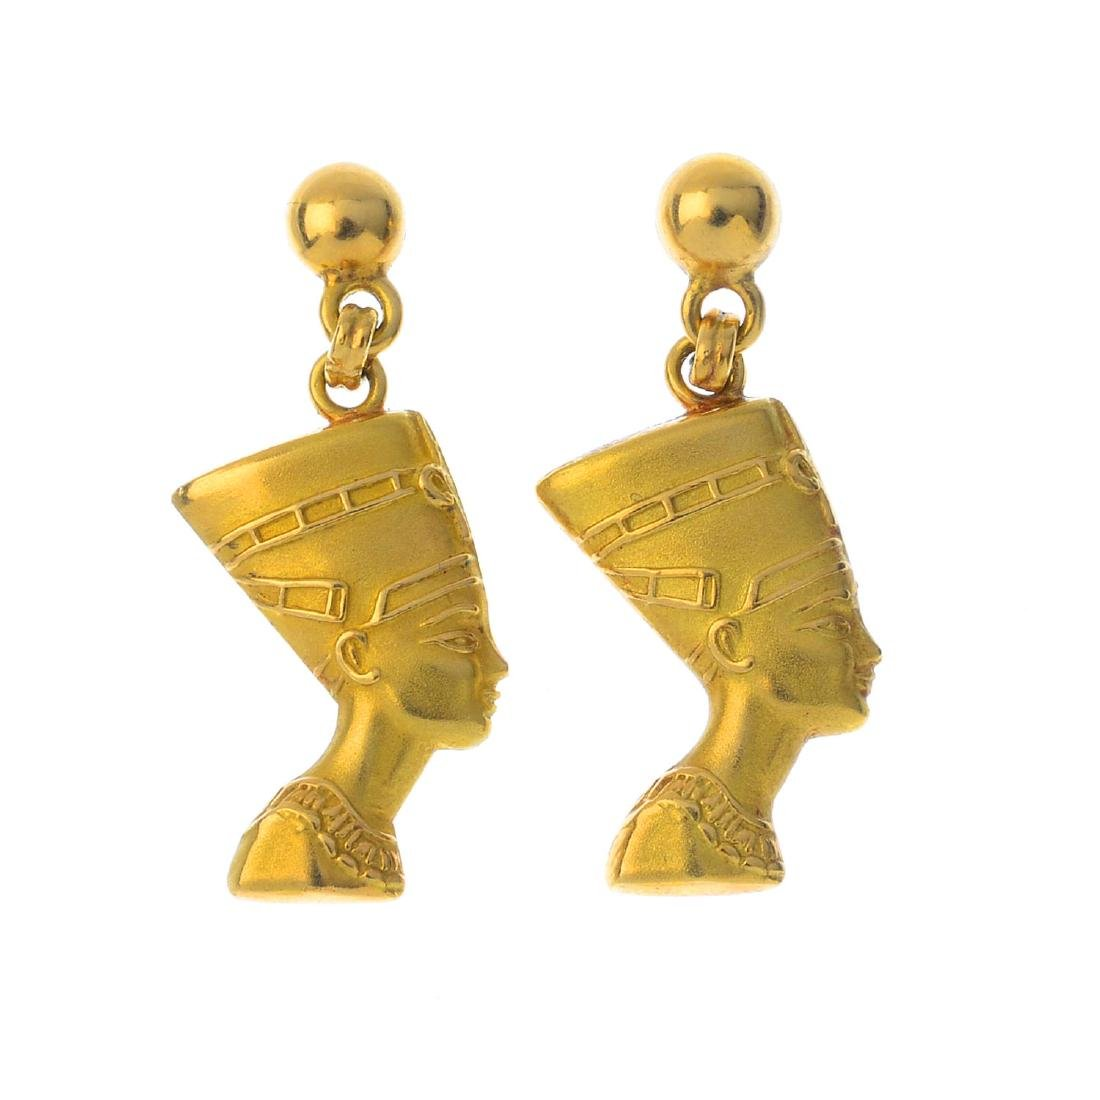 A pair of earrings. Each designed to depict a textured